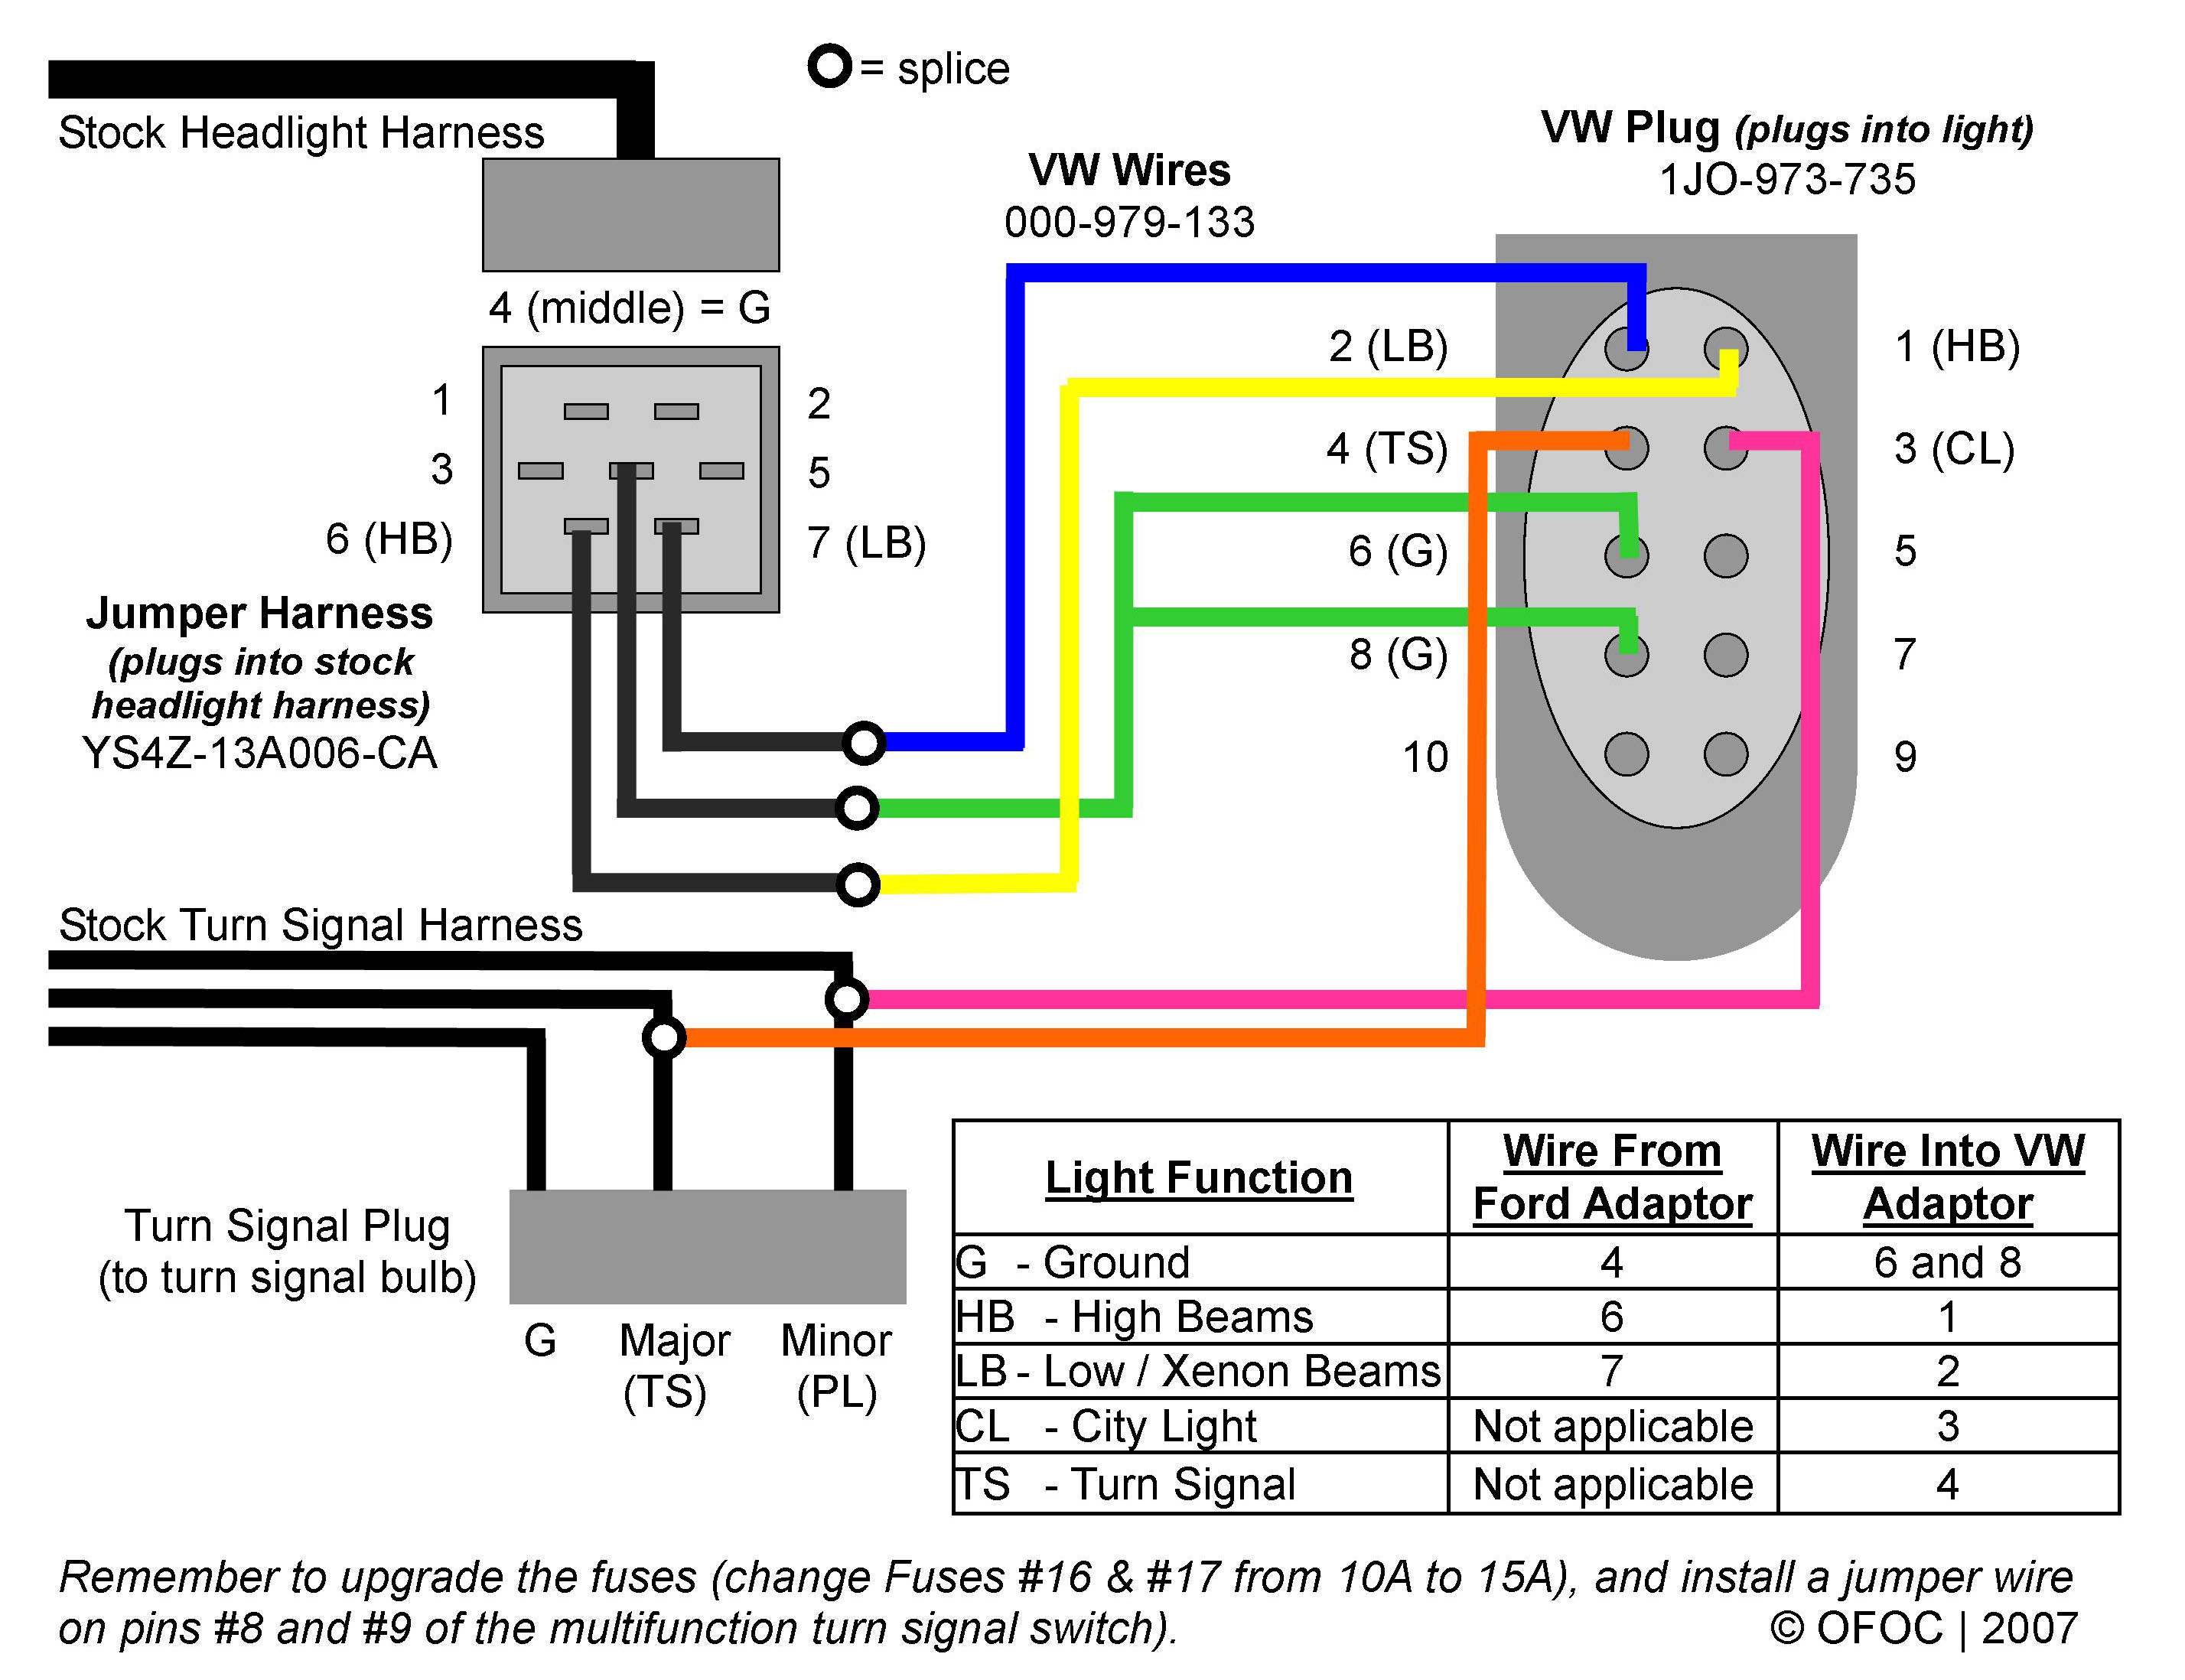 wiringschematic how to vw wiring hack (convert your car to euro mach headlights 3 Wire Headlight Wiring Diagram at gsmx.co